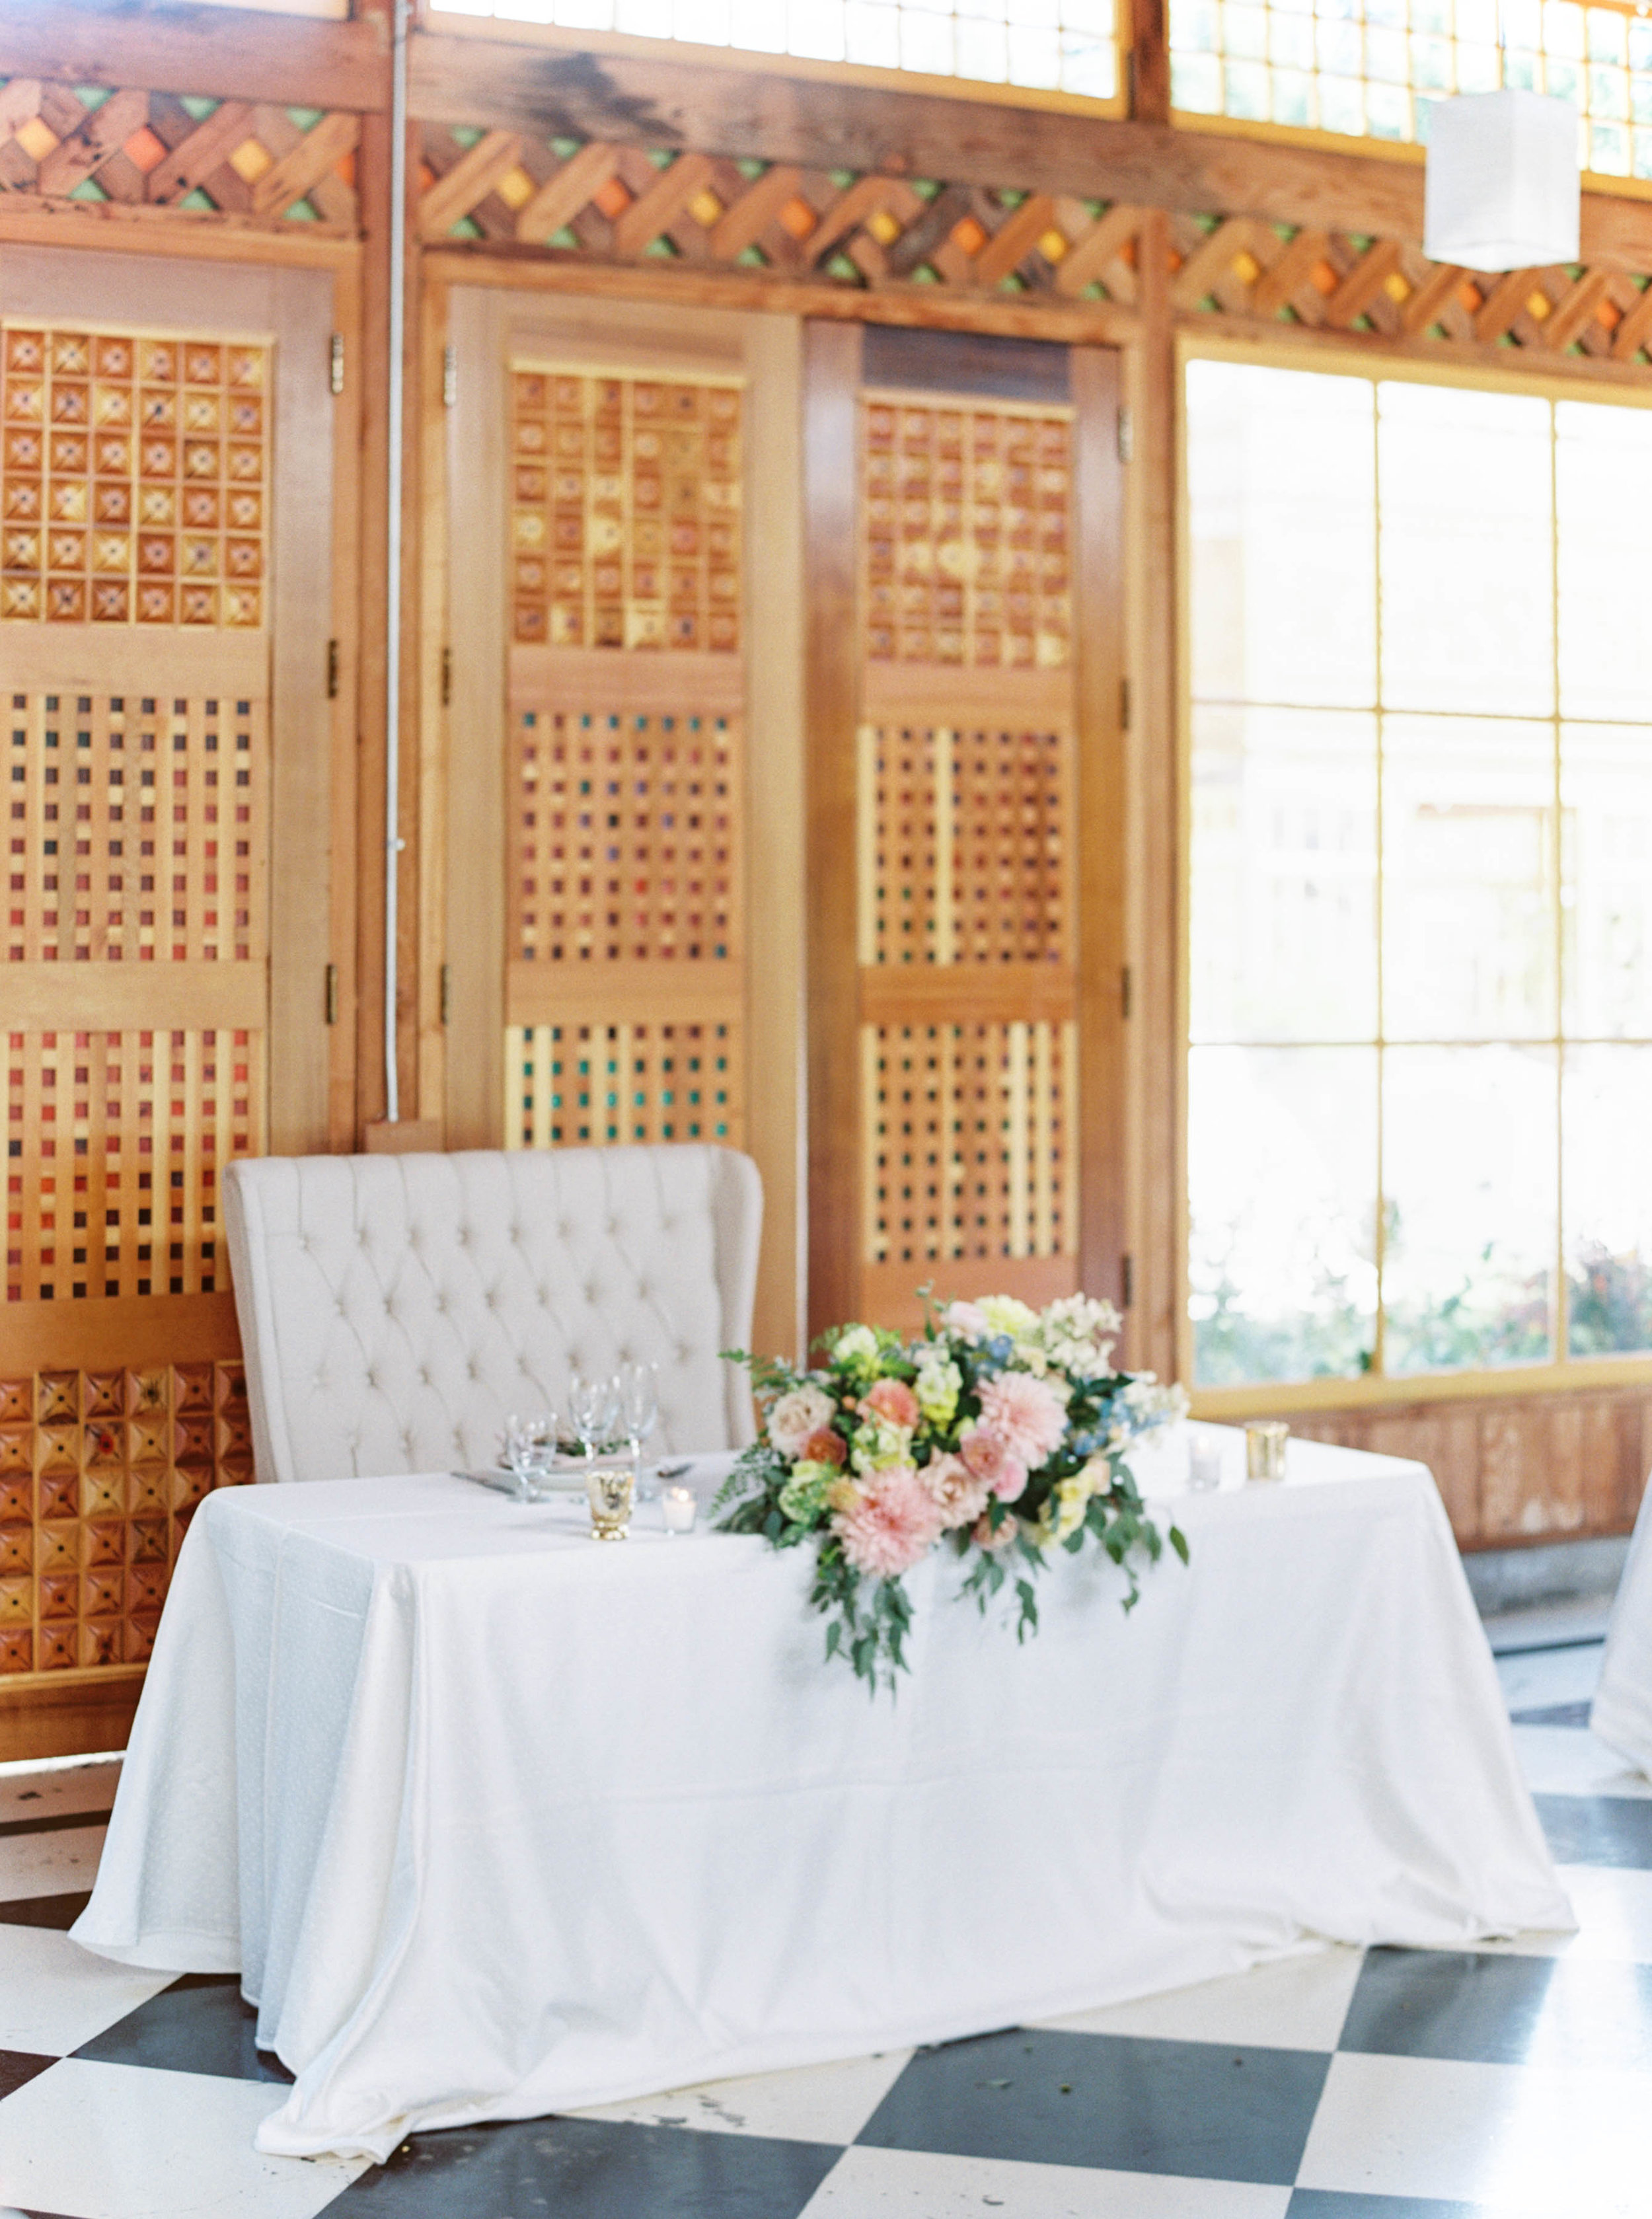 oregon wedding sweetheart table with pink, peach and blue wedding flowers.jpg